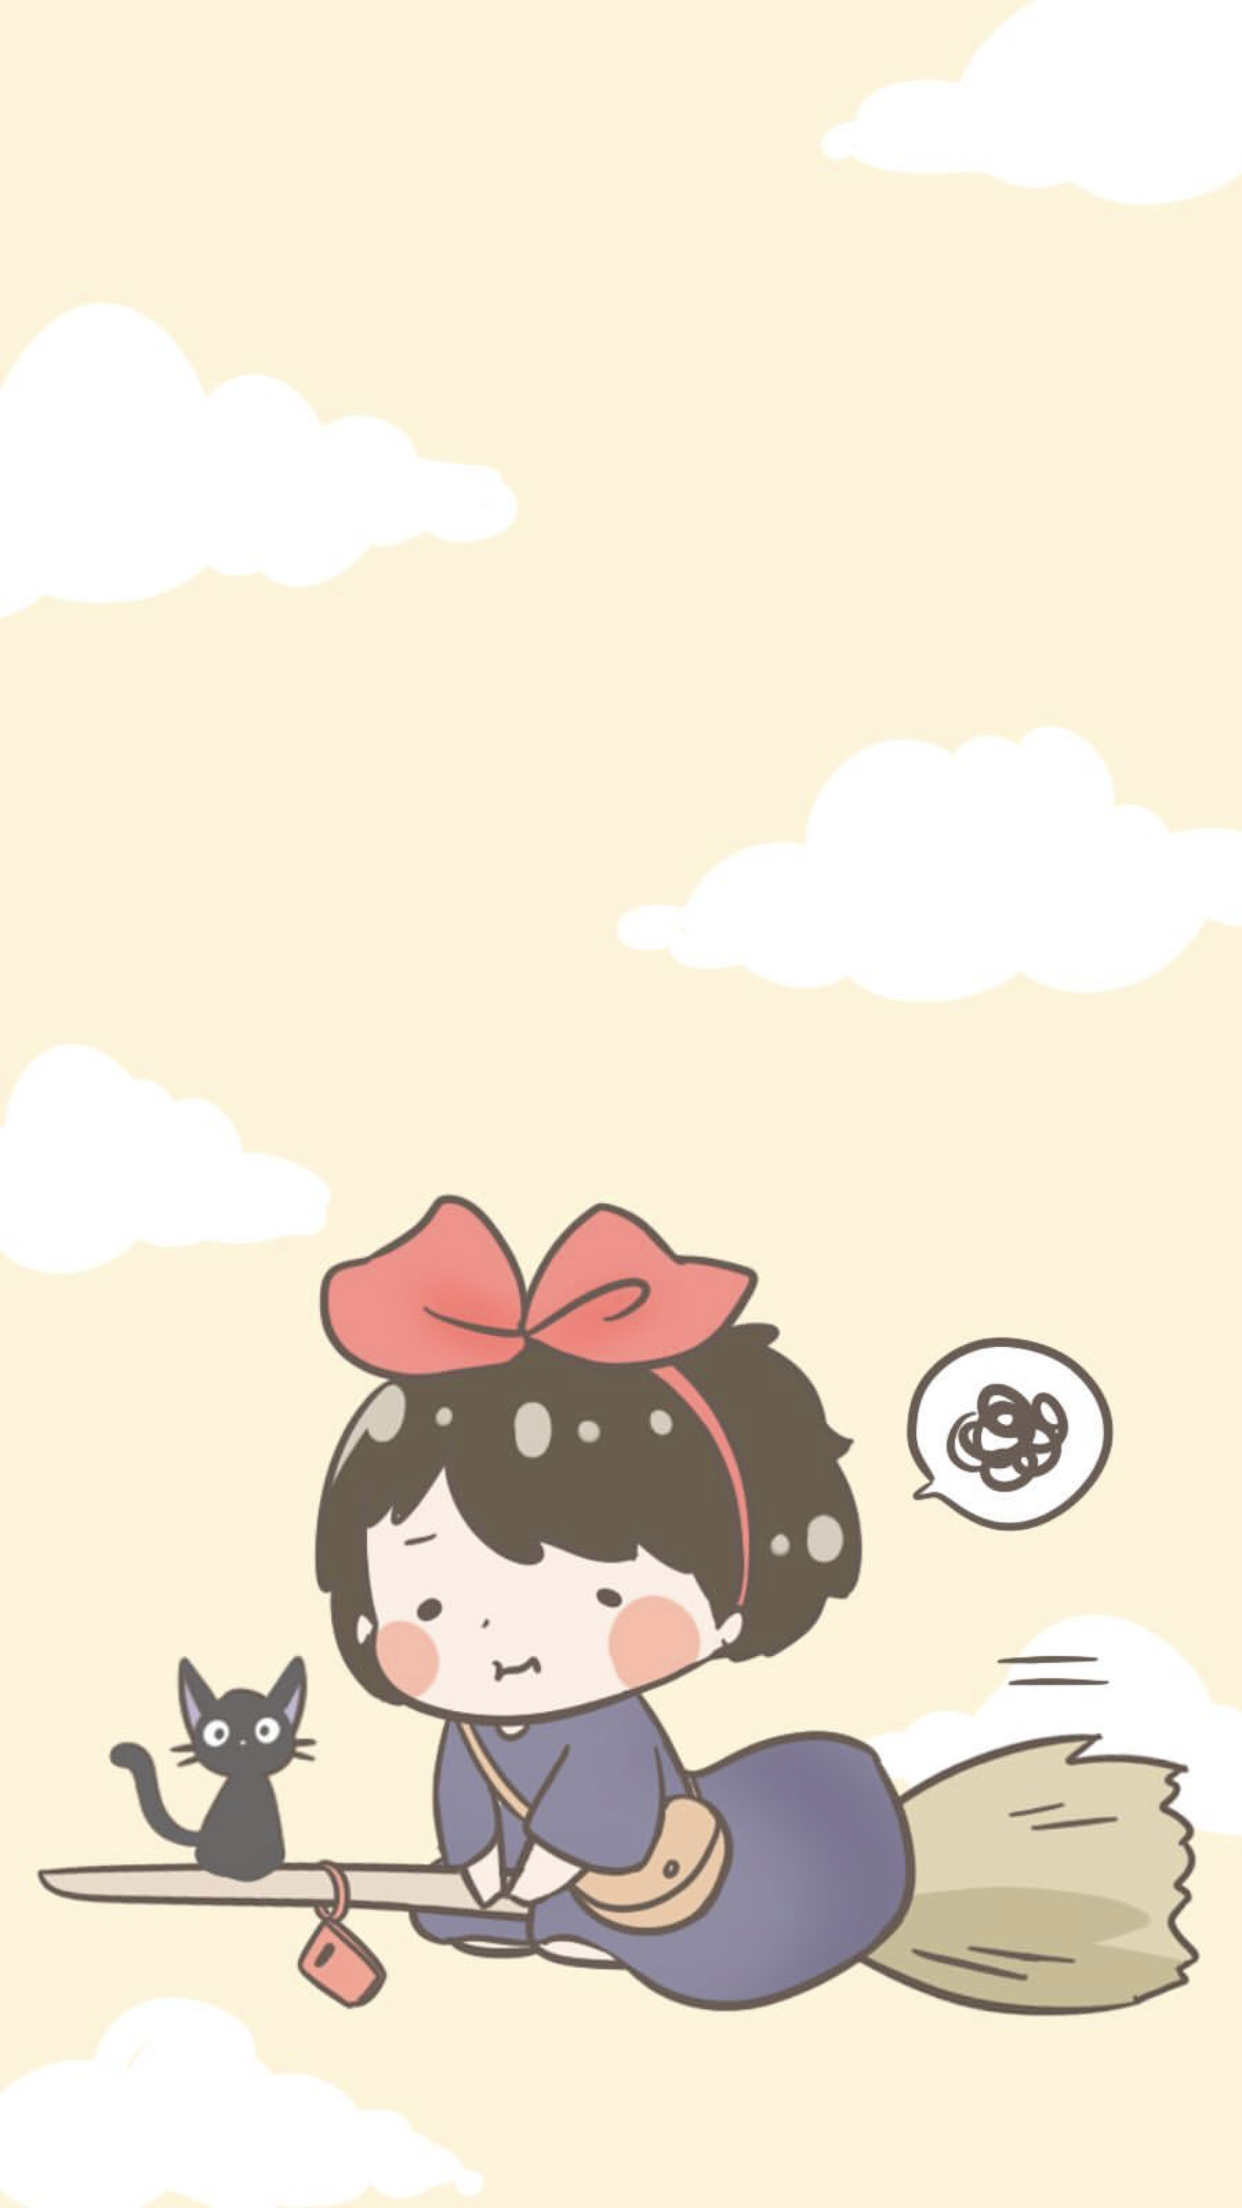 Pin By Iam Siucowcow On Wallpaper Cute Anime Wallpaper Kawaii Wallpaper Cartoon Wallpaper